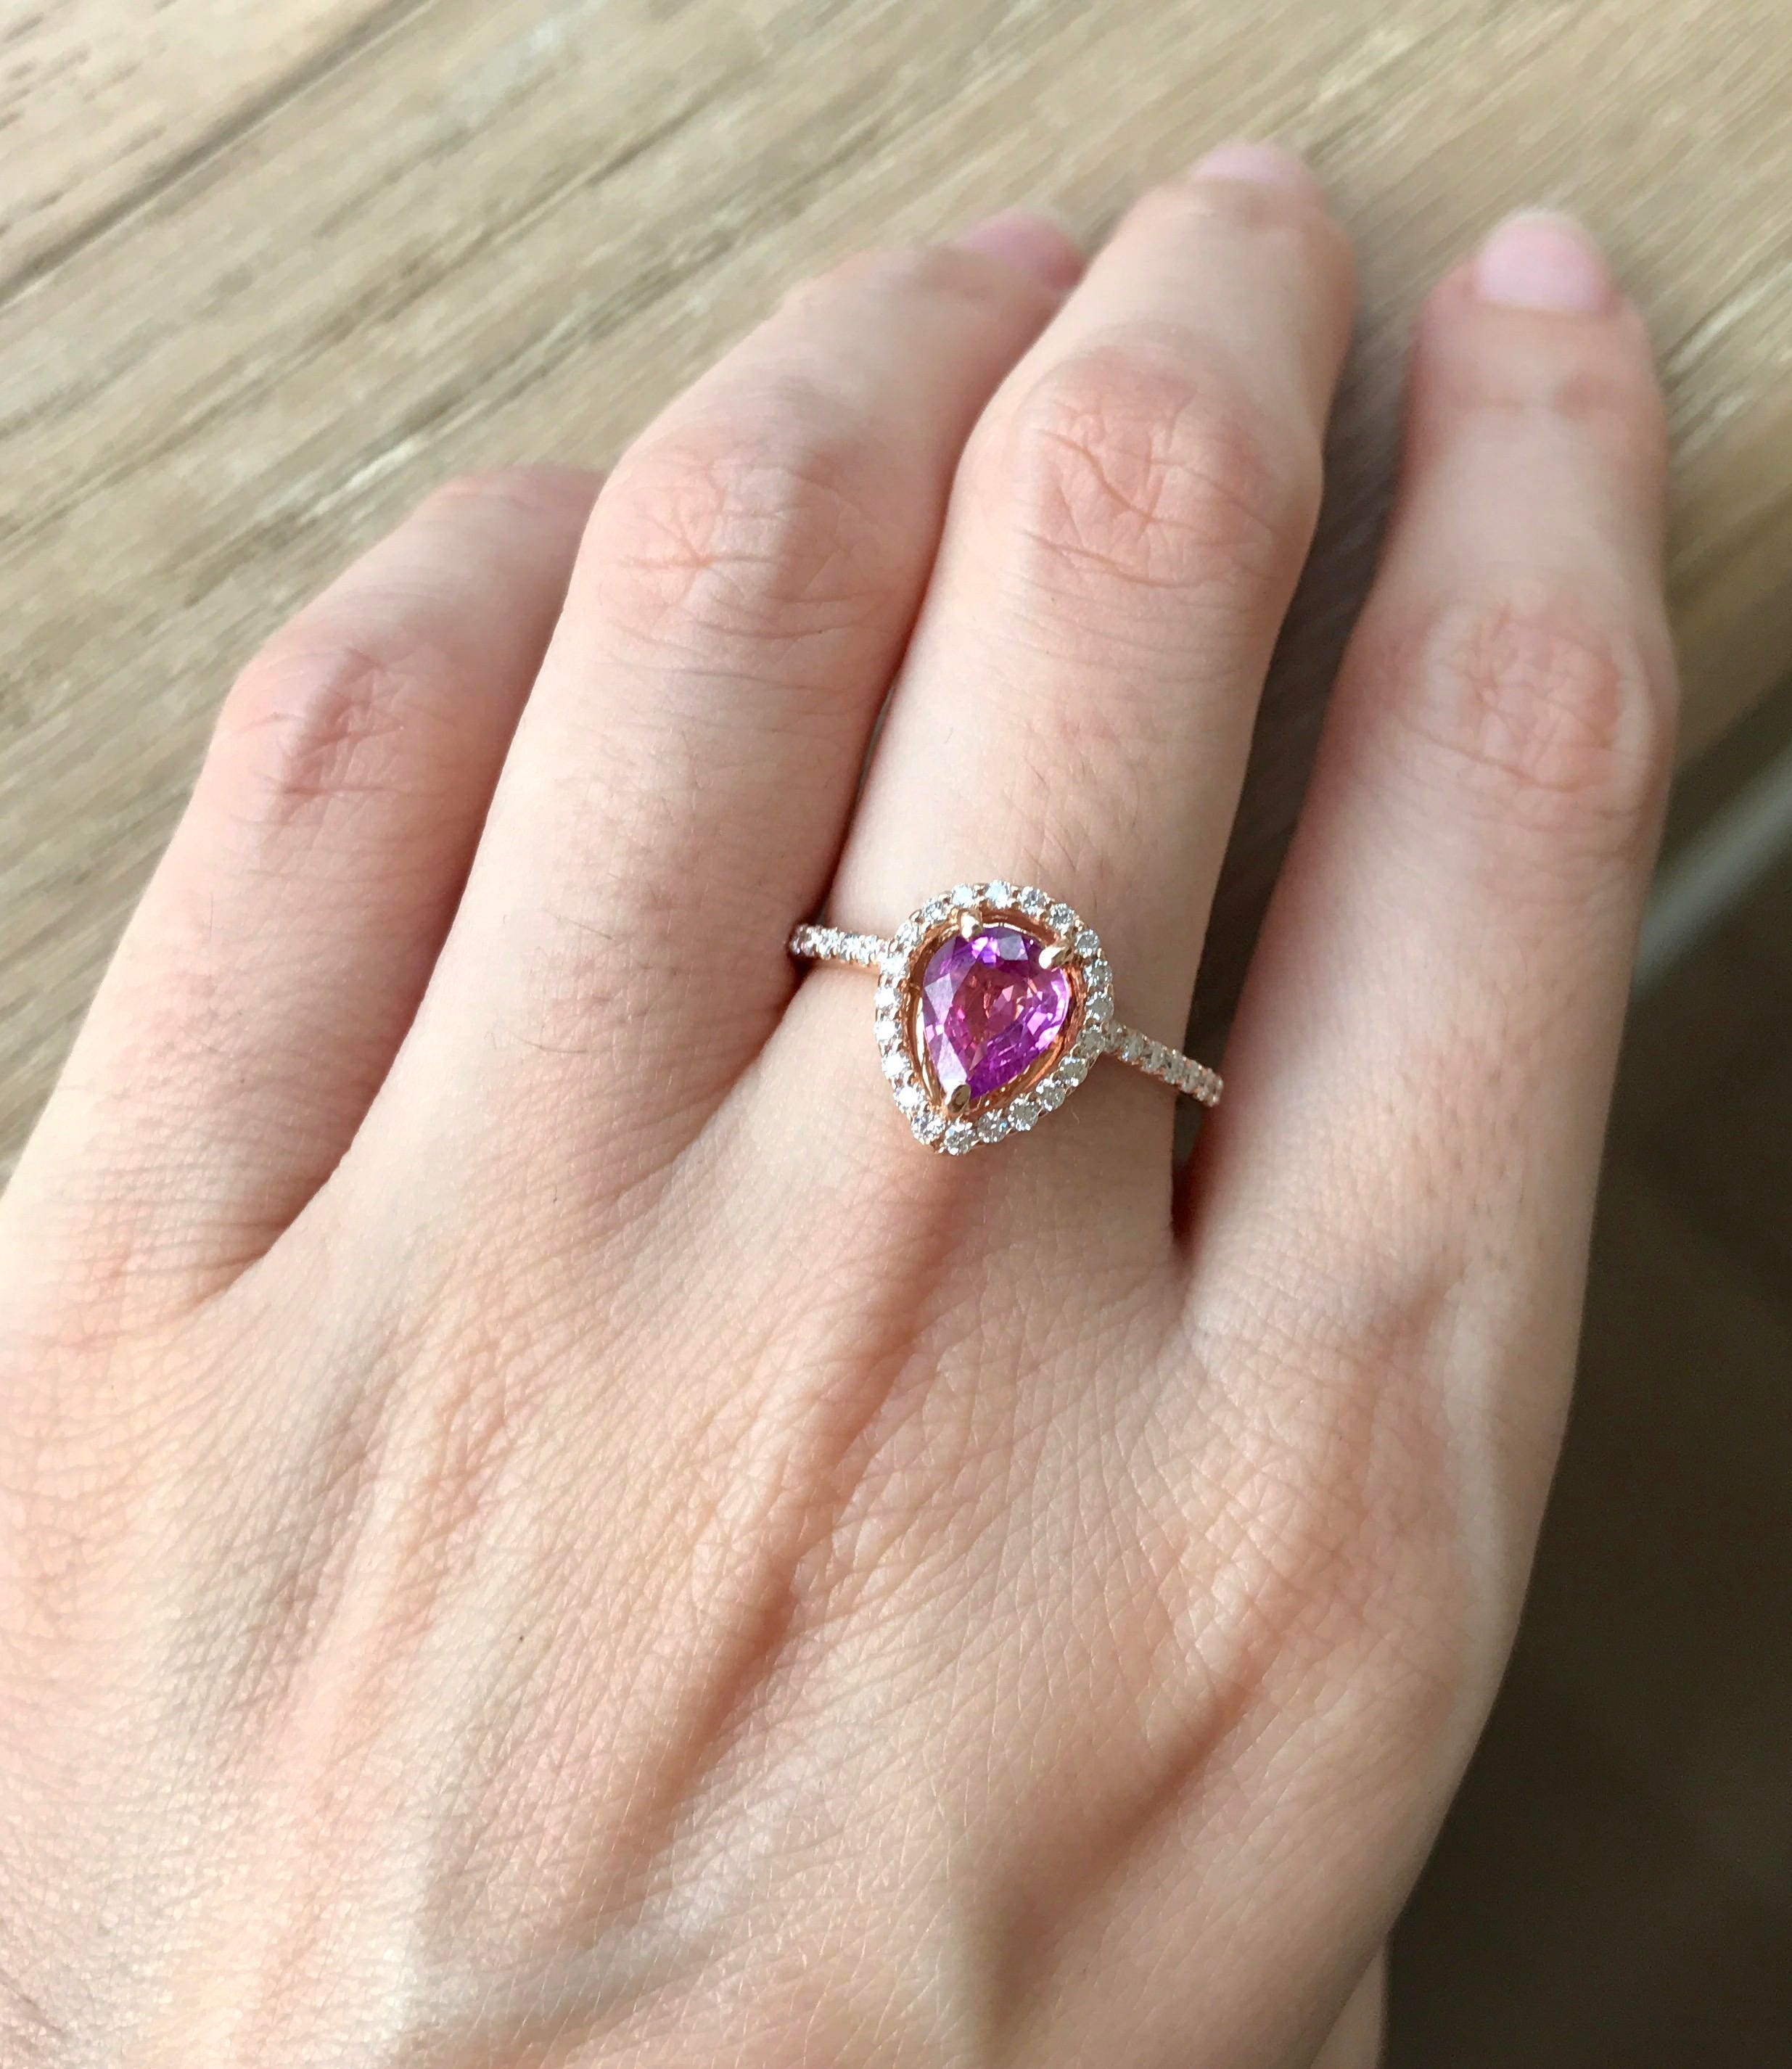 forevermark rings ring collections colored engagement pink diamonds lugaro diamond fancy stone